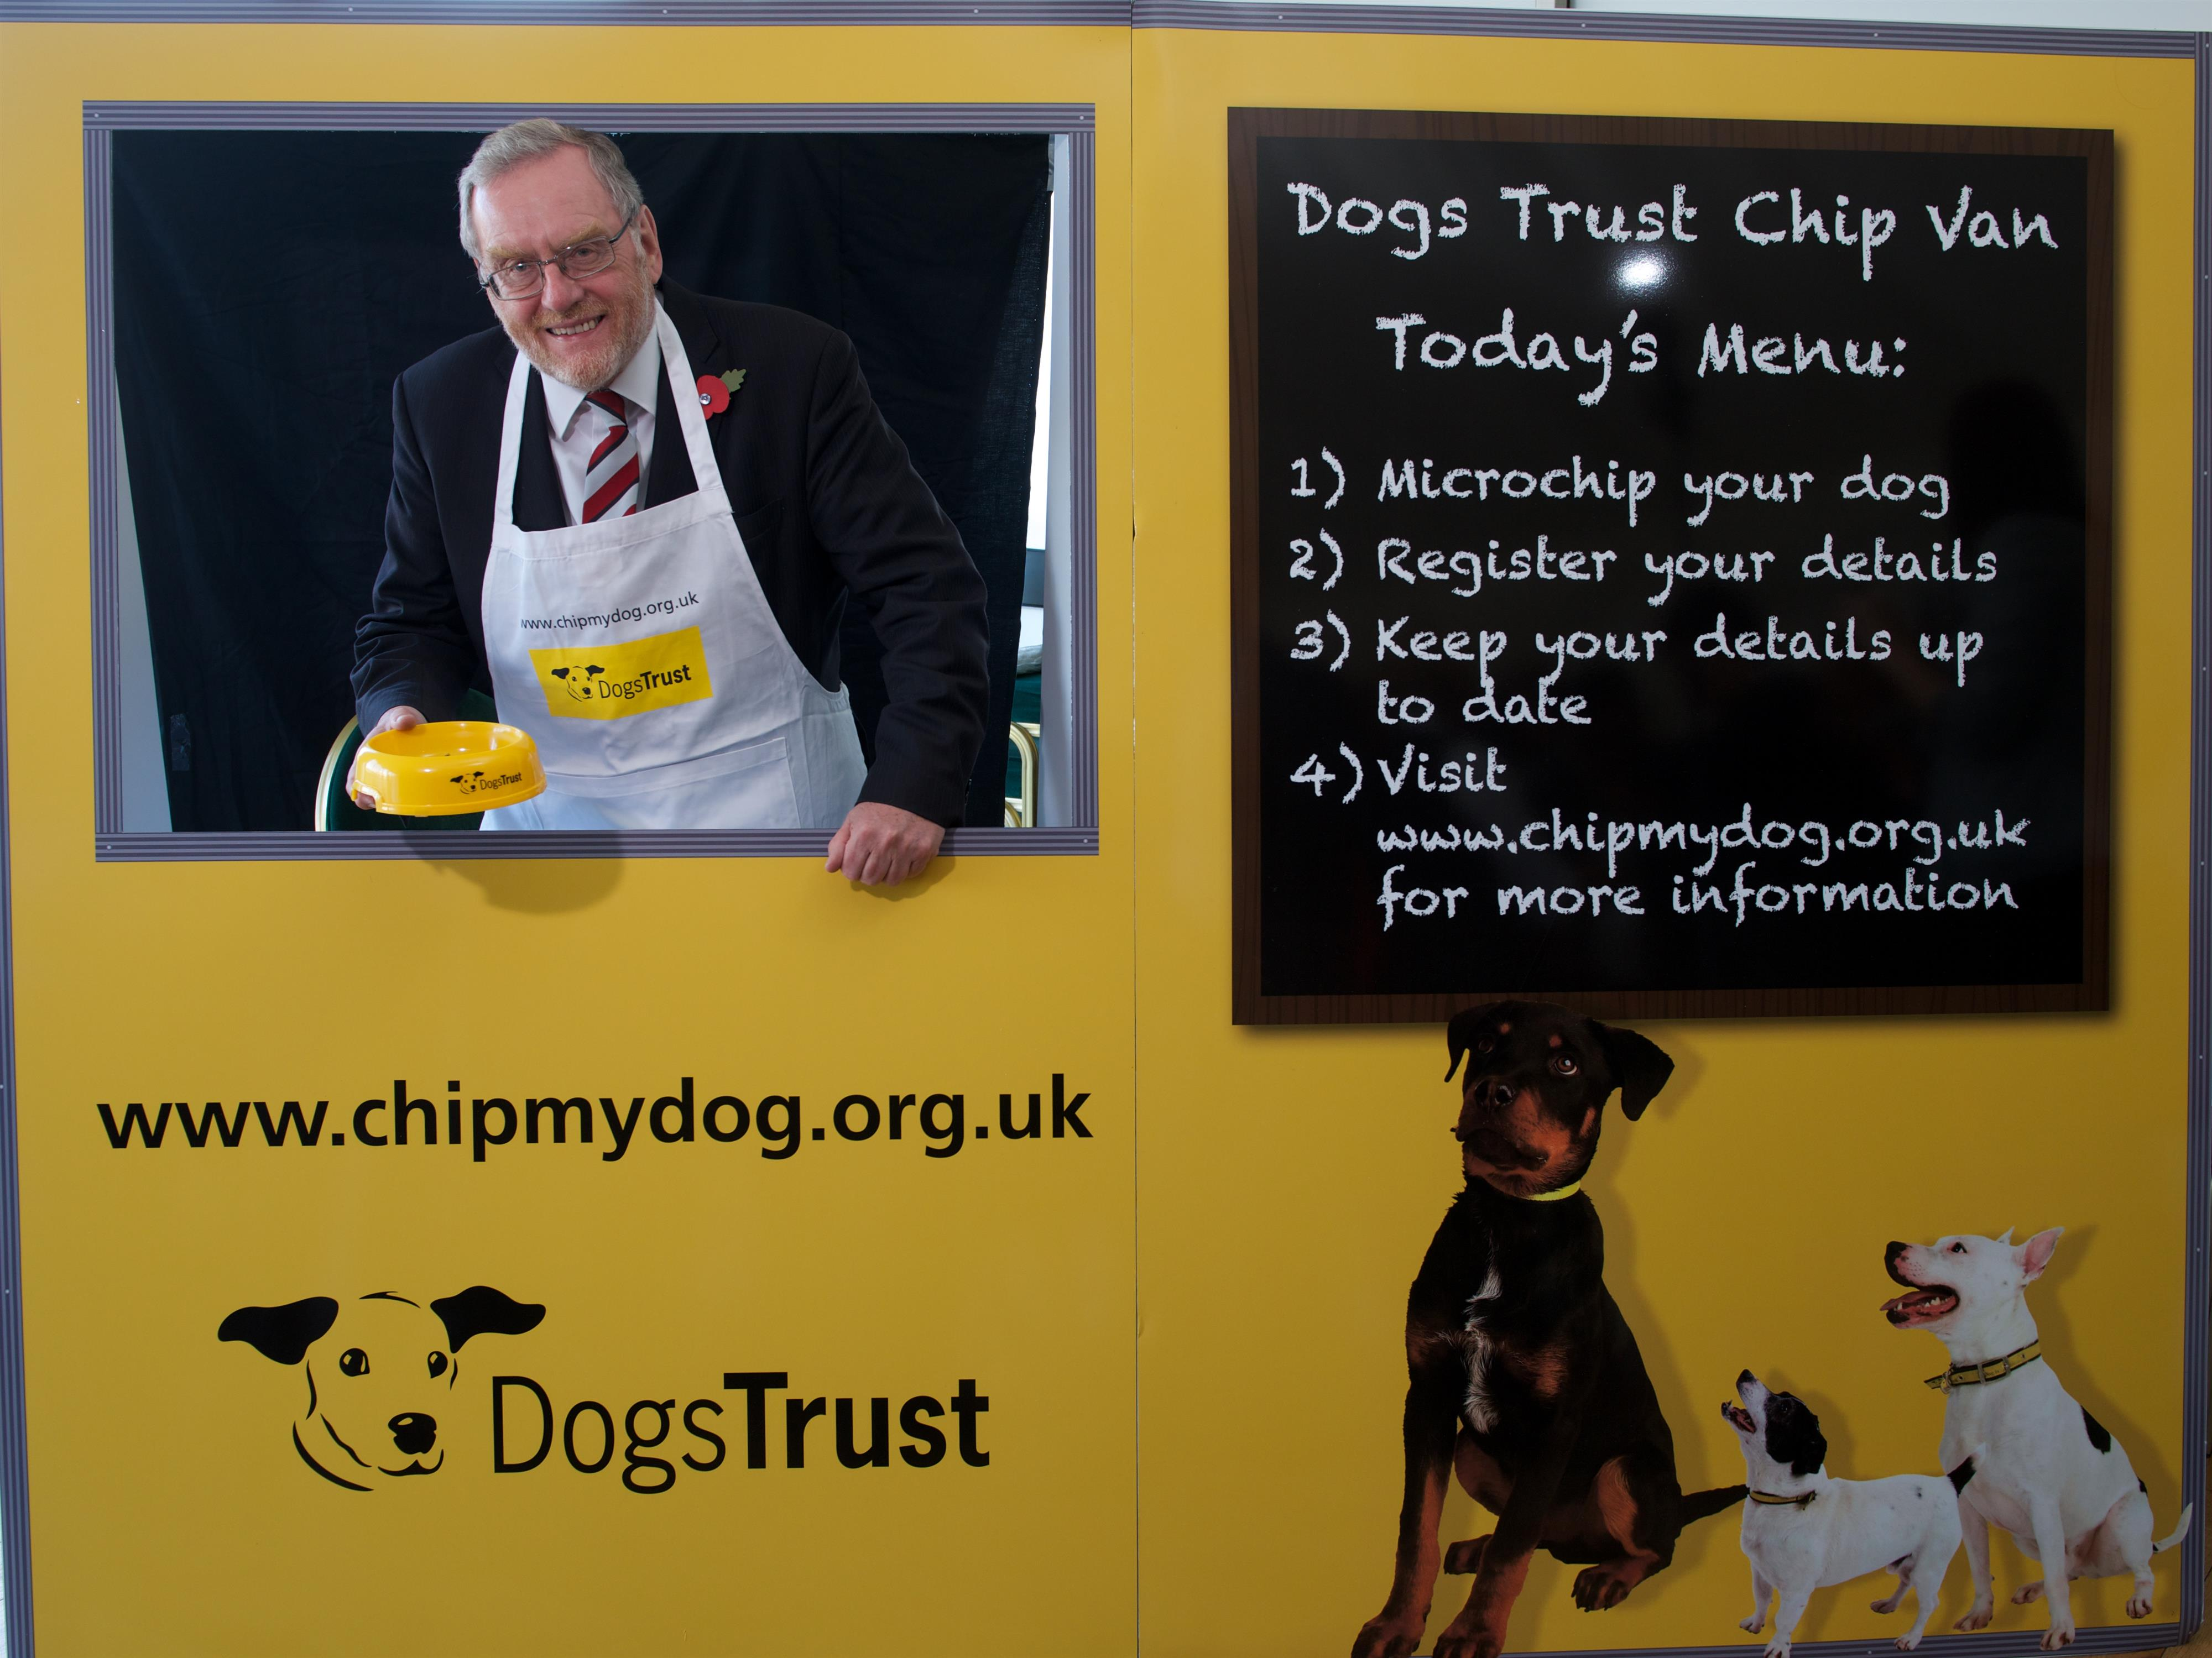 John Spellar MP in the Dogs Trust Chip Van